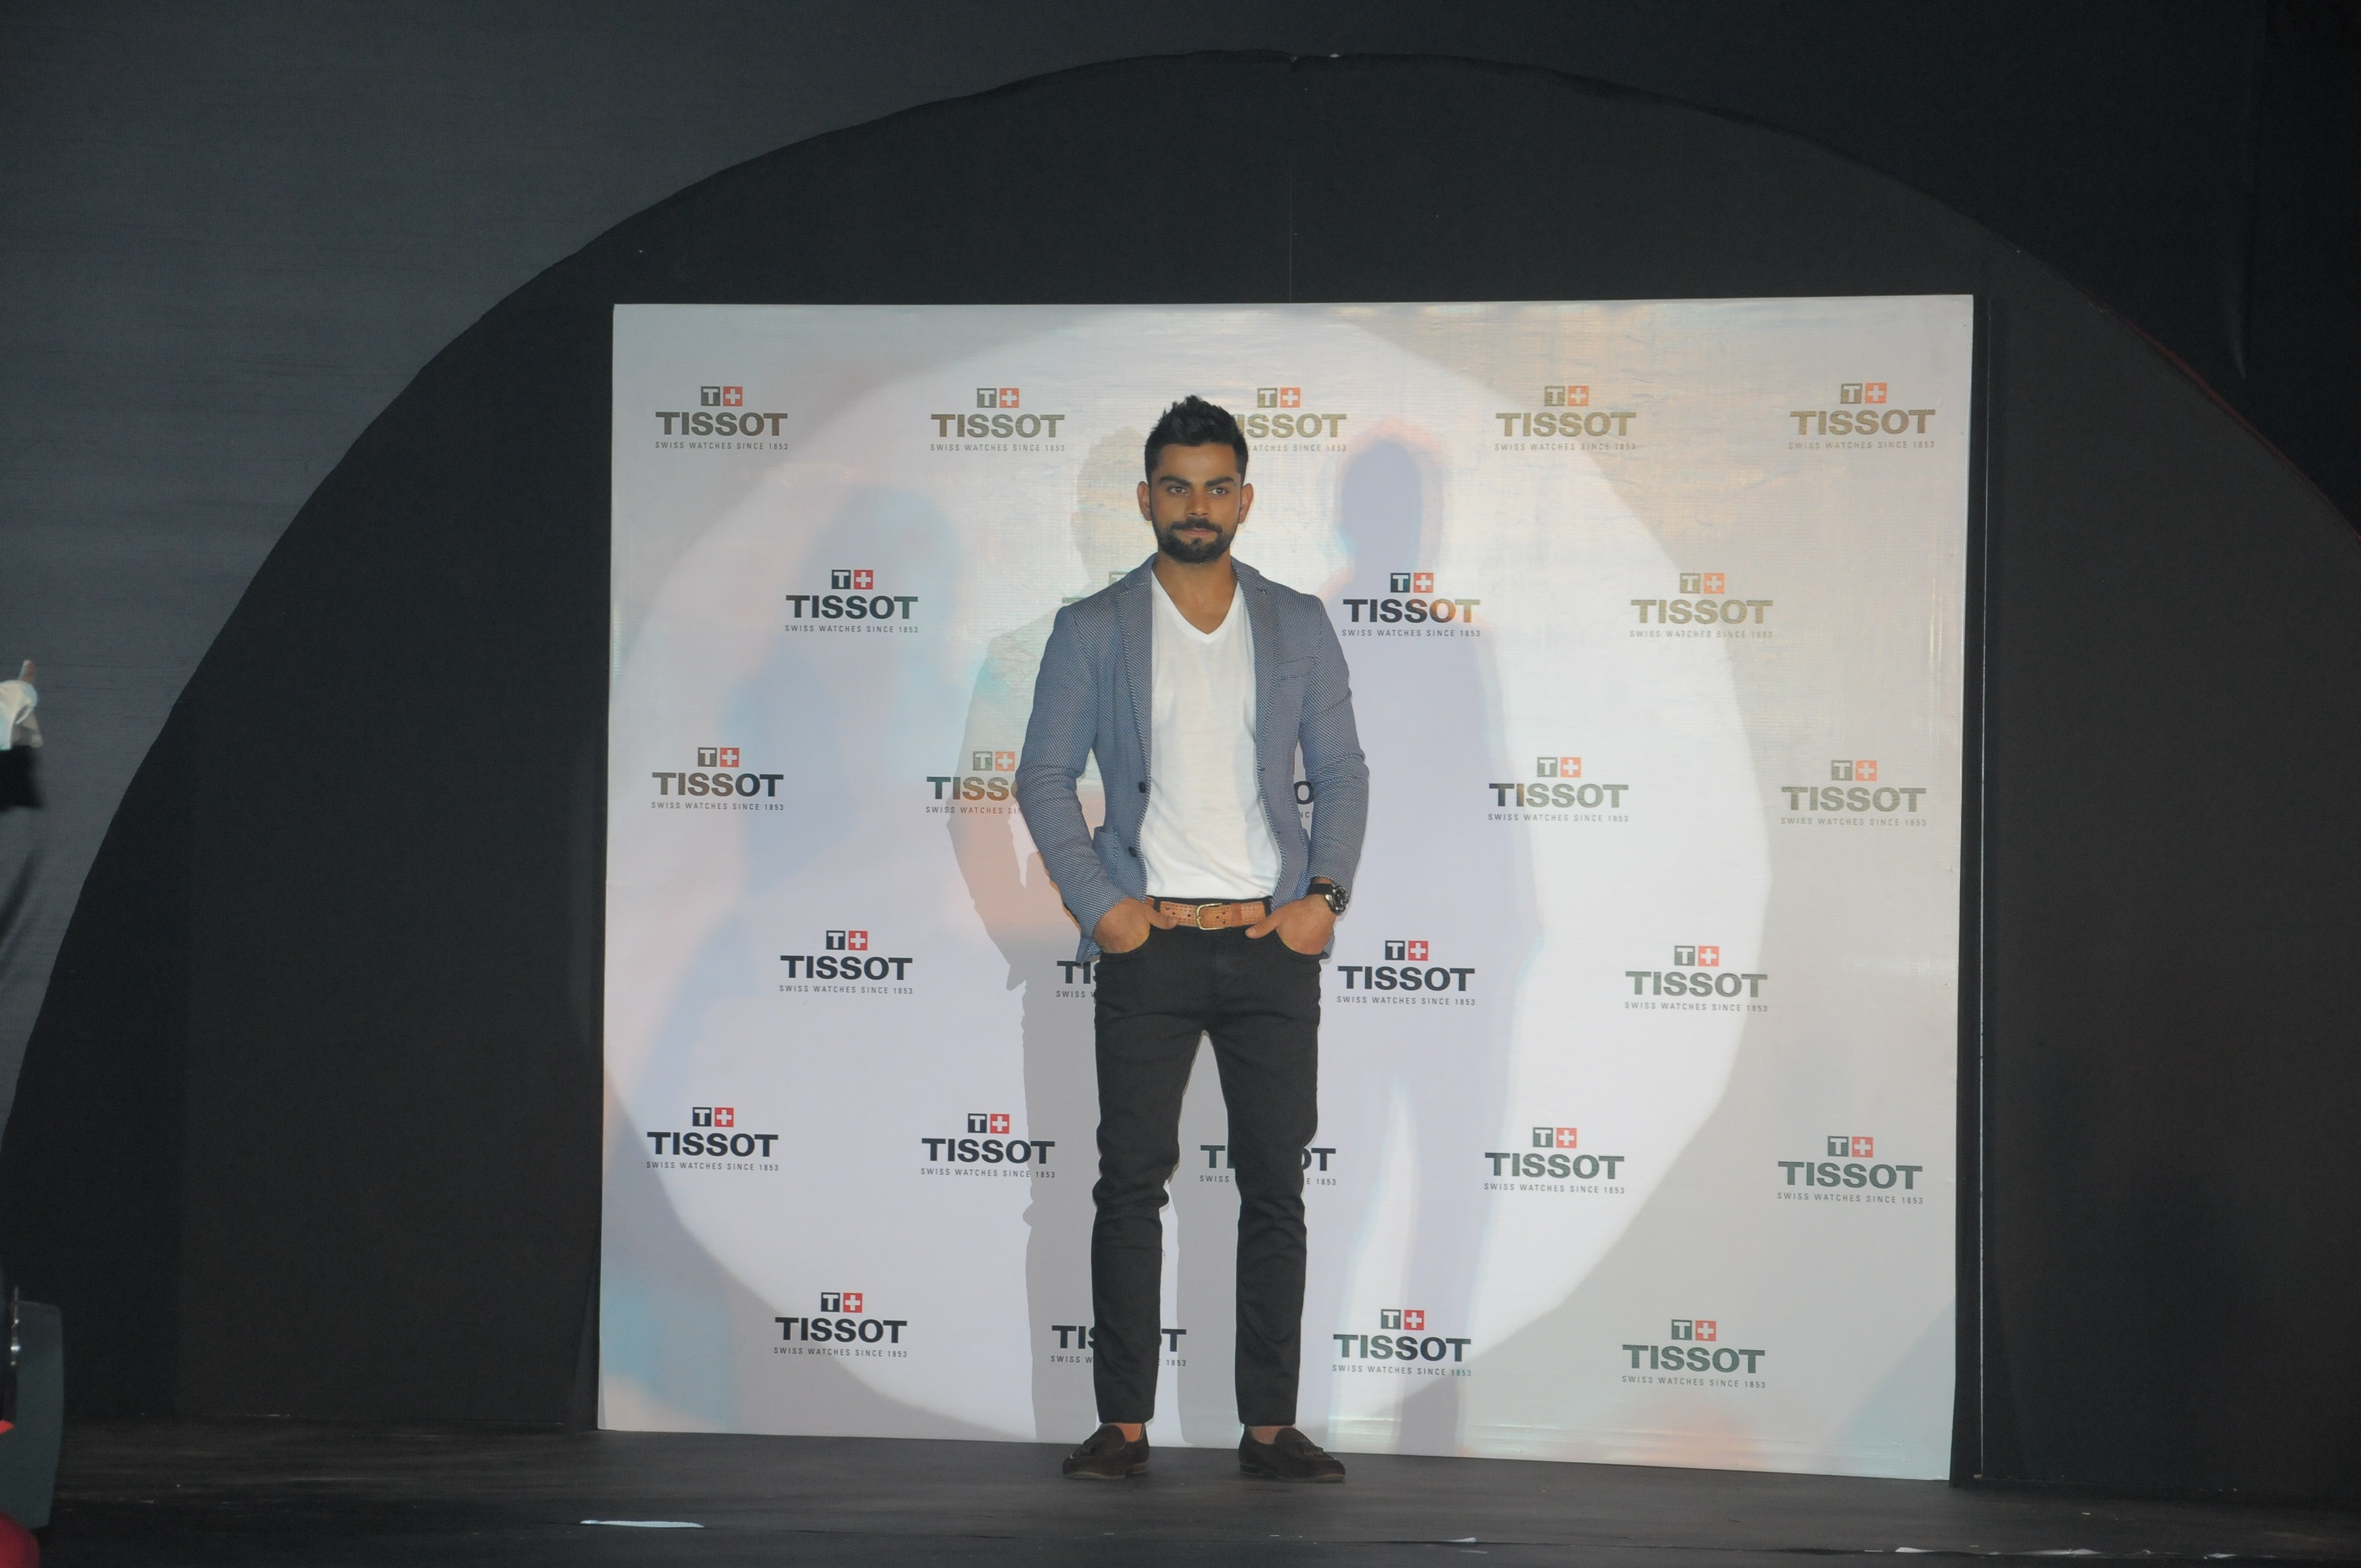 Virat Kohli - The new male Indian Brand Ambassador - being announced at the event in Delhi